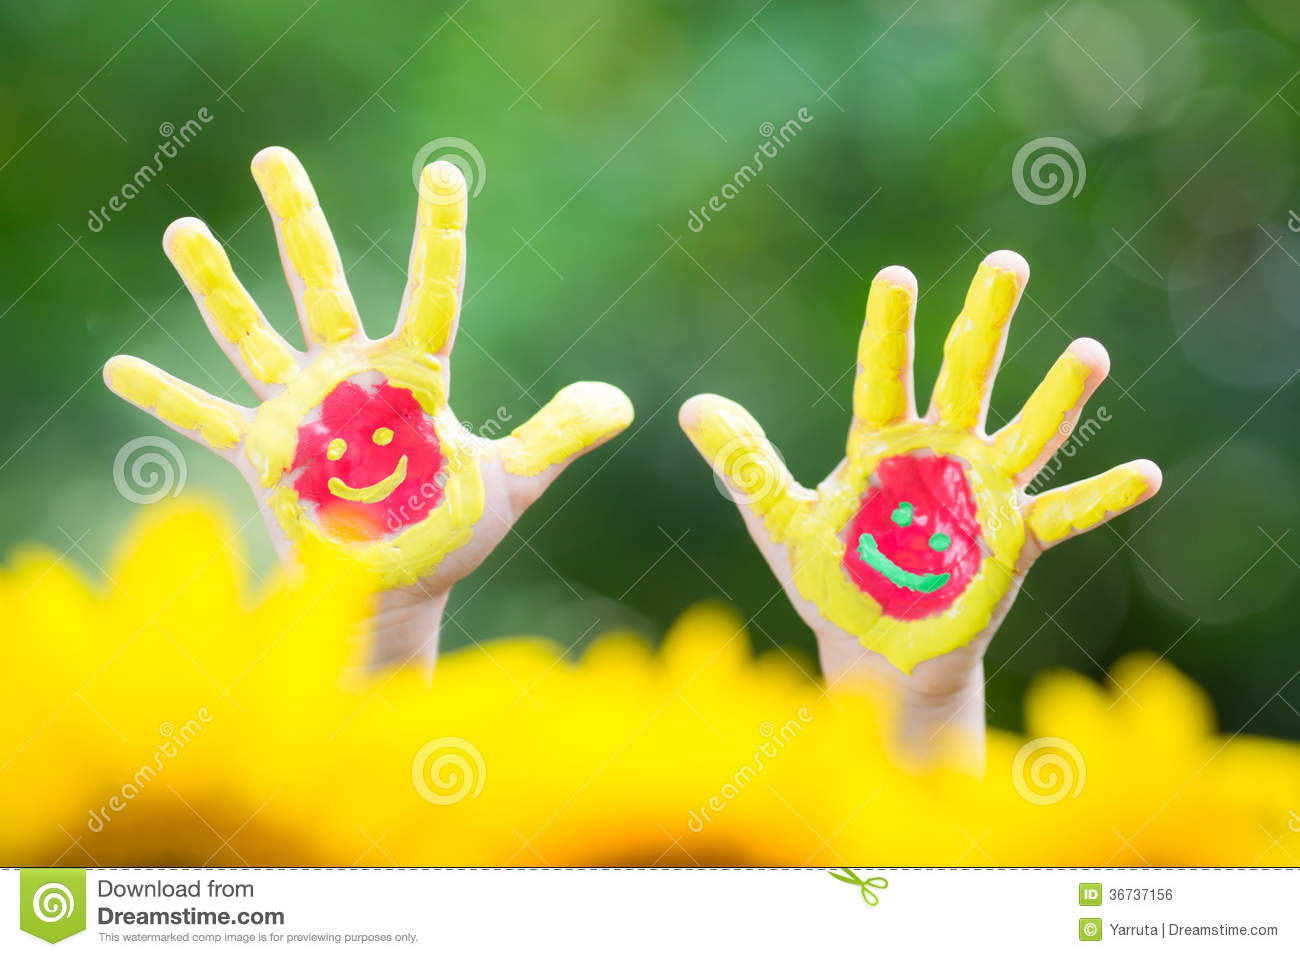 Smiley hands